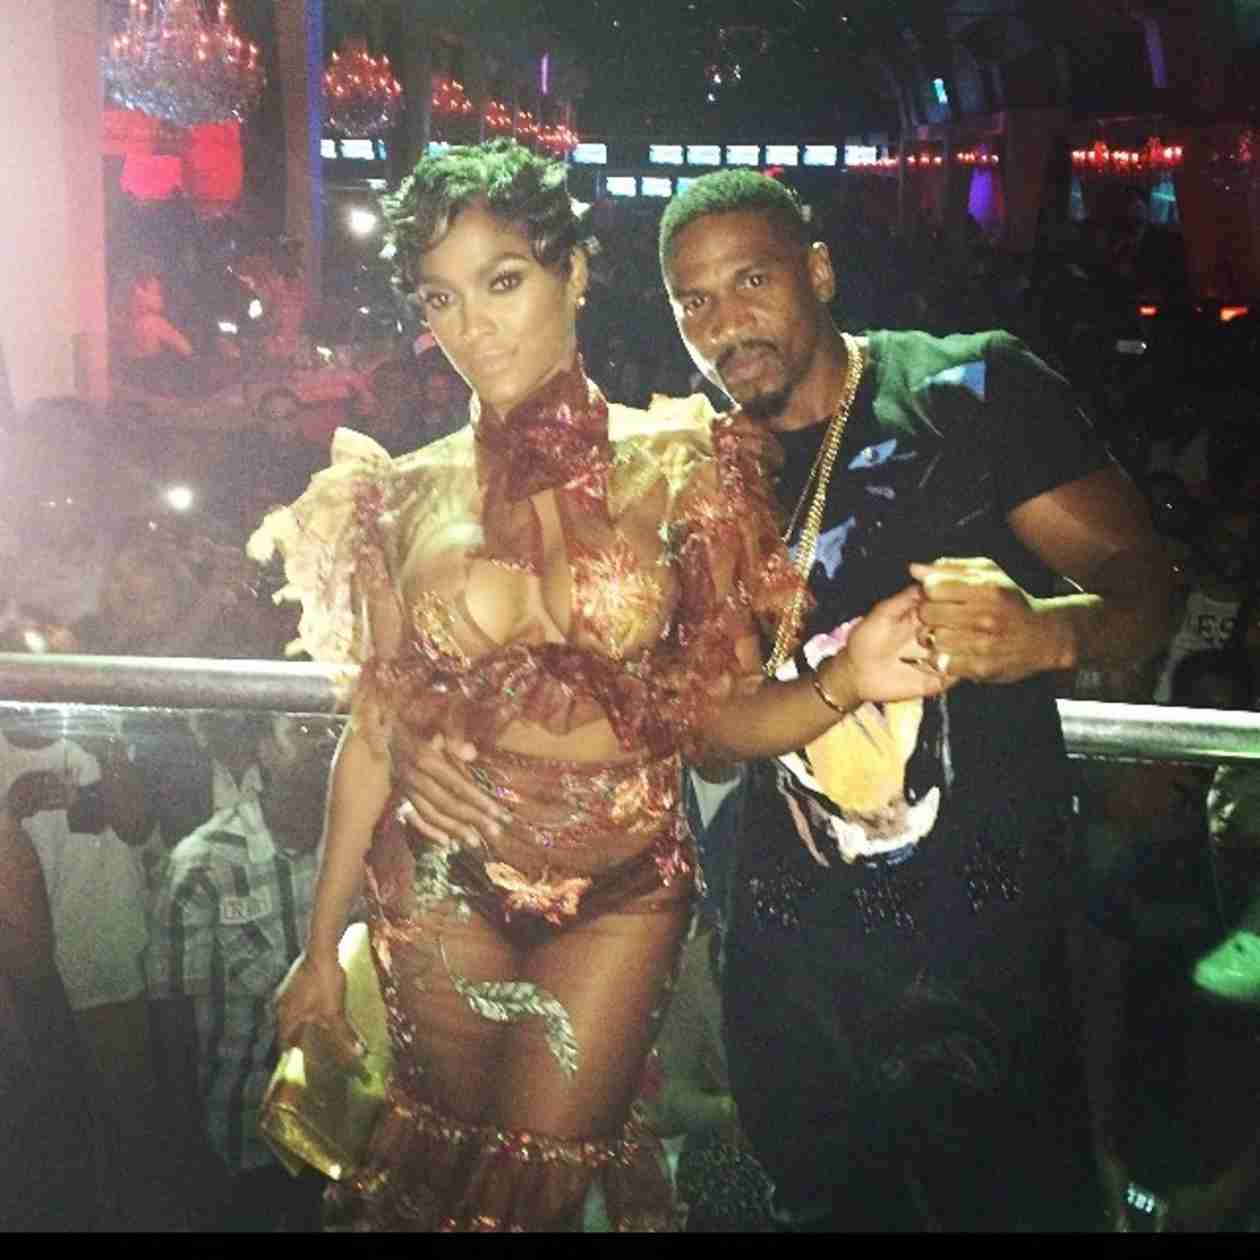 Stevie J. and Joseline Hernandez Brave the ALS Ice Bucket Challenge (VIDEOS)